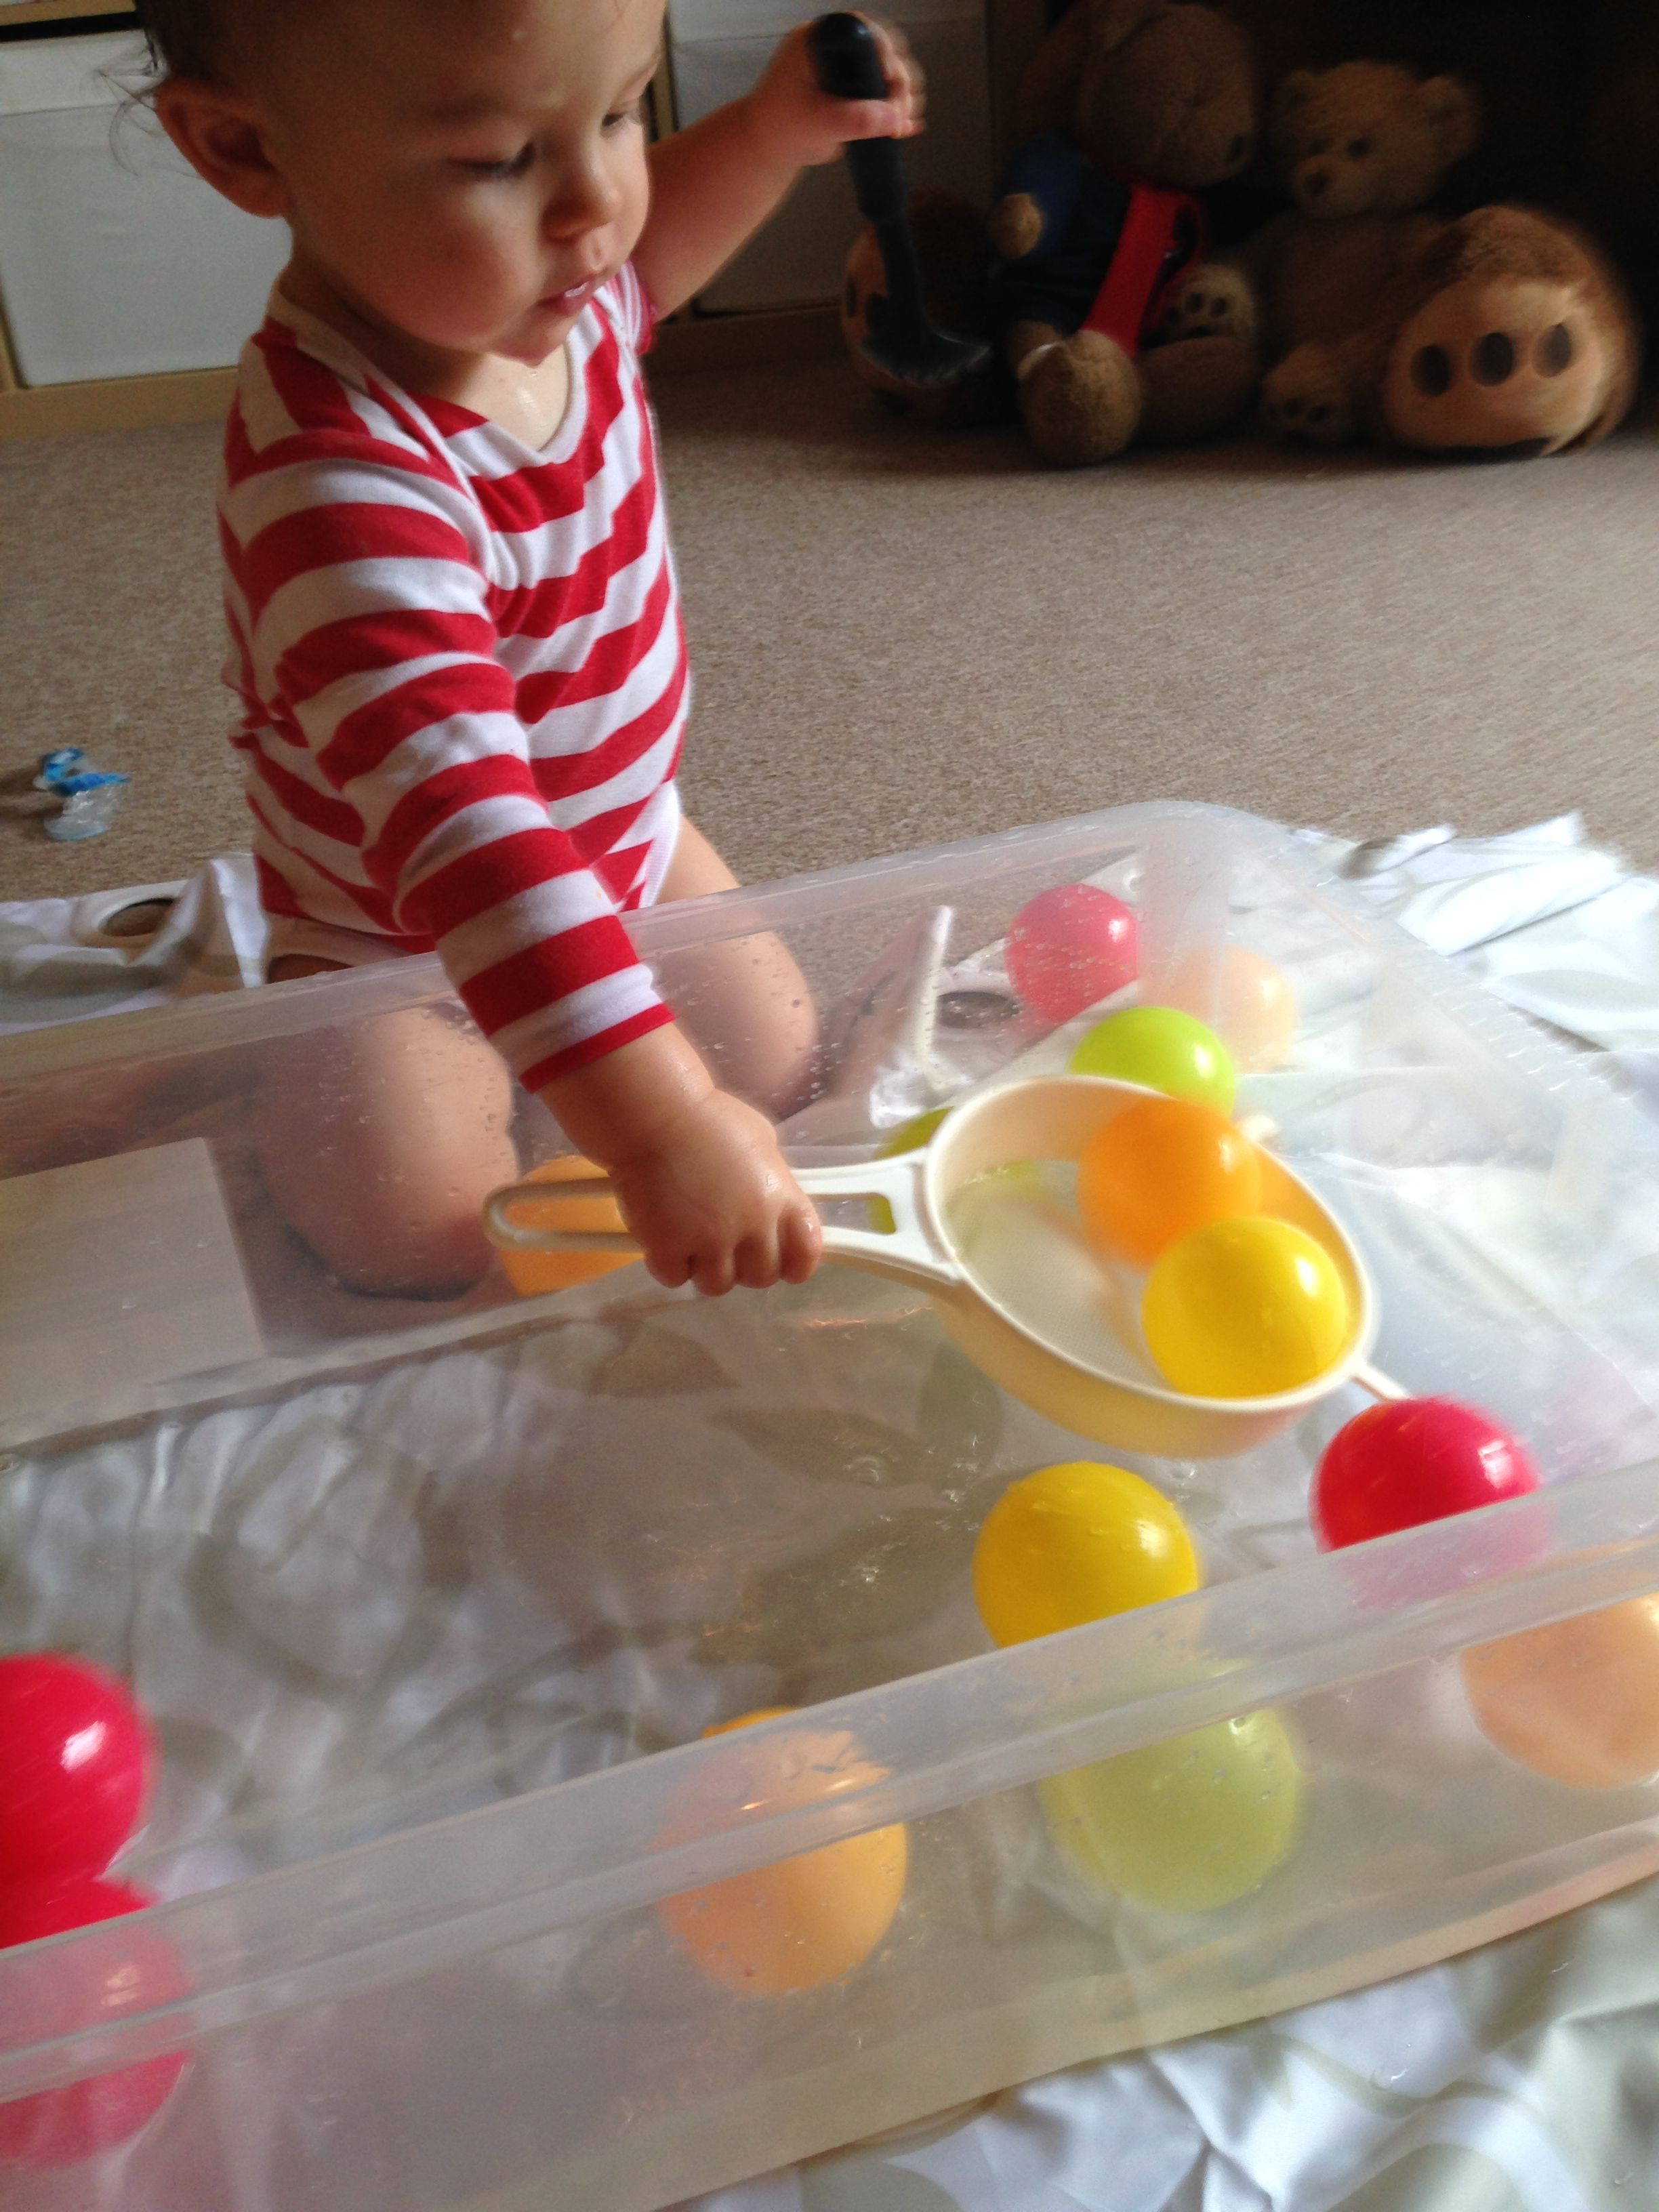 36+ Projects for 1 year olds ideas in 2021